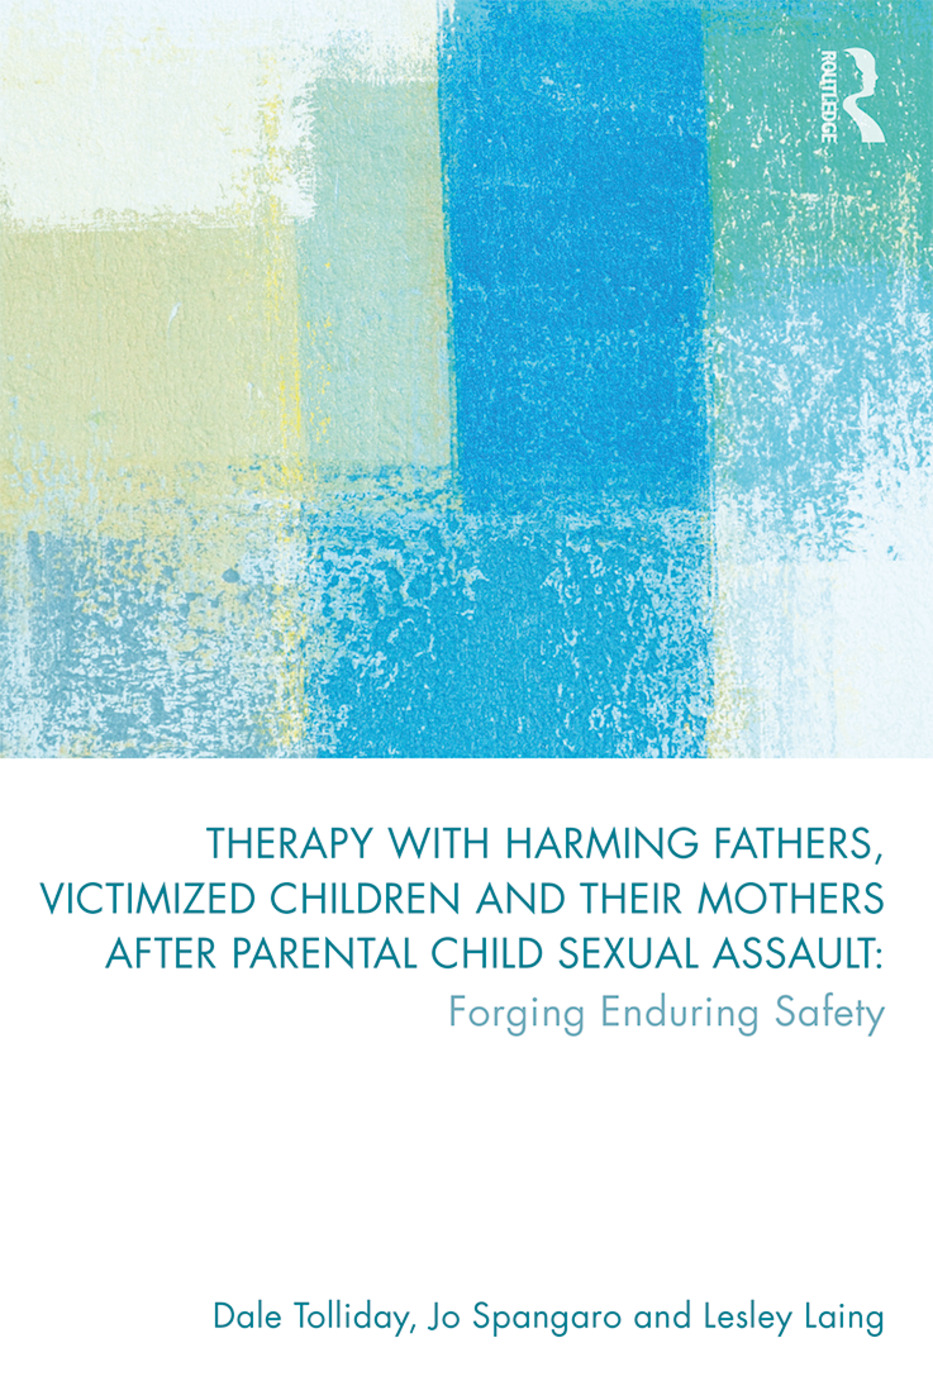 Therapy with Harming Fathers, Victimized Children and their Mothers after Parental Child Sexual Assault: Forging Enduring Safety book cover